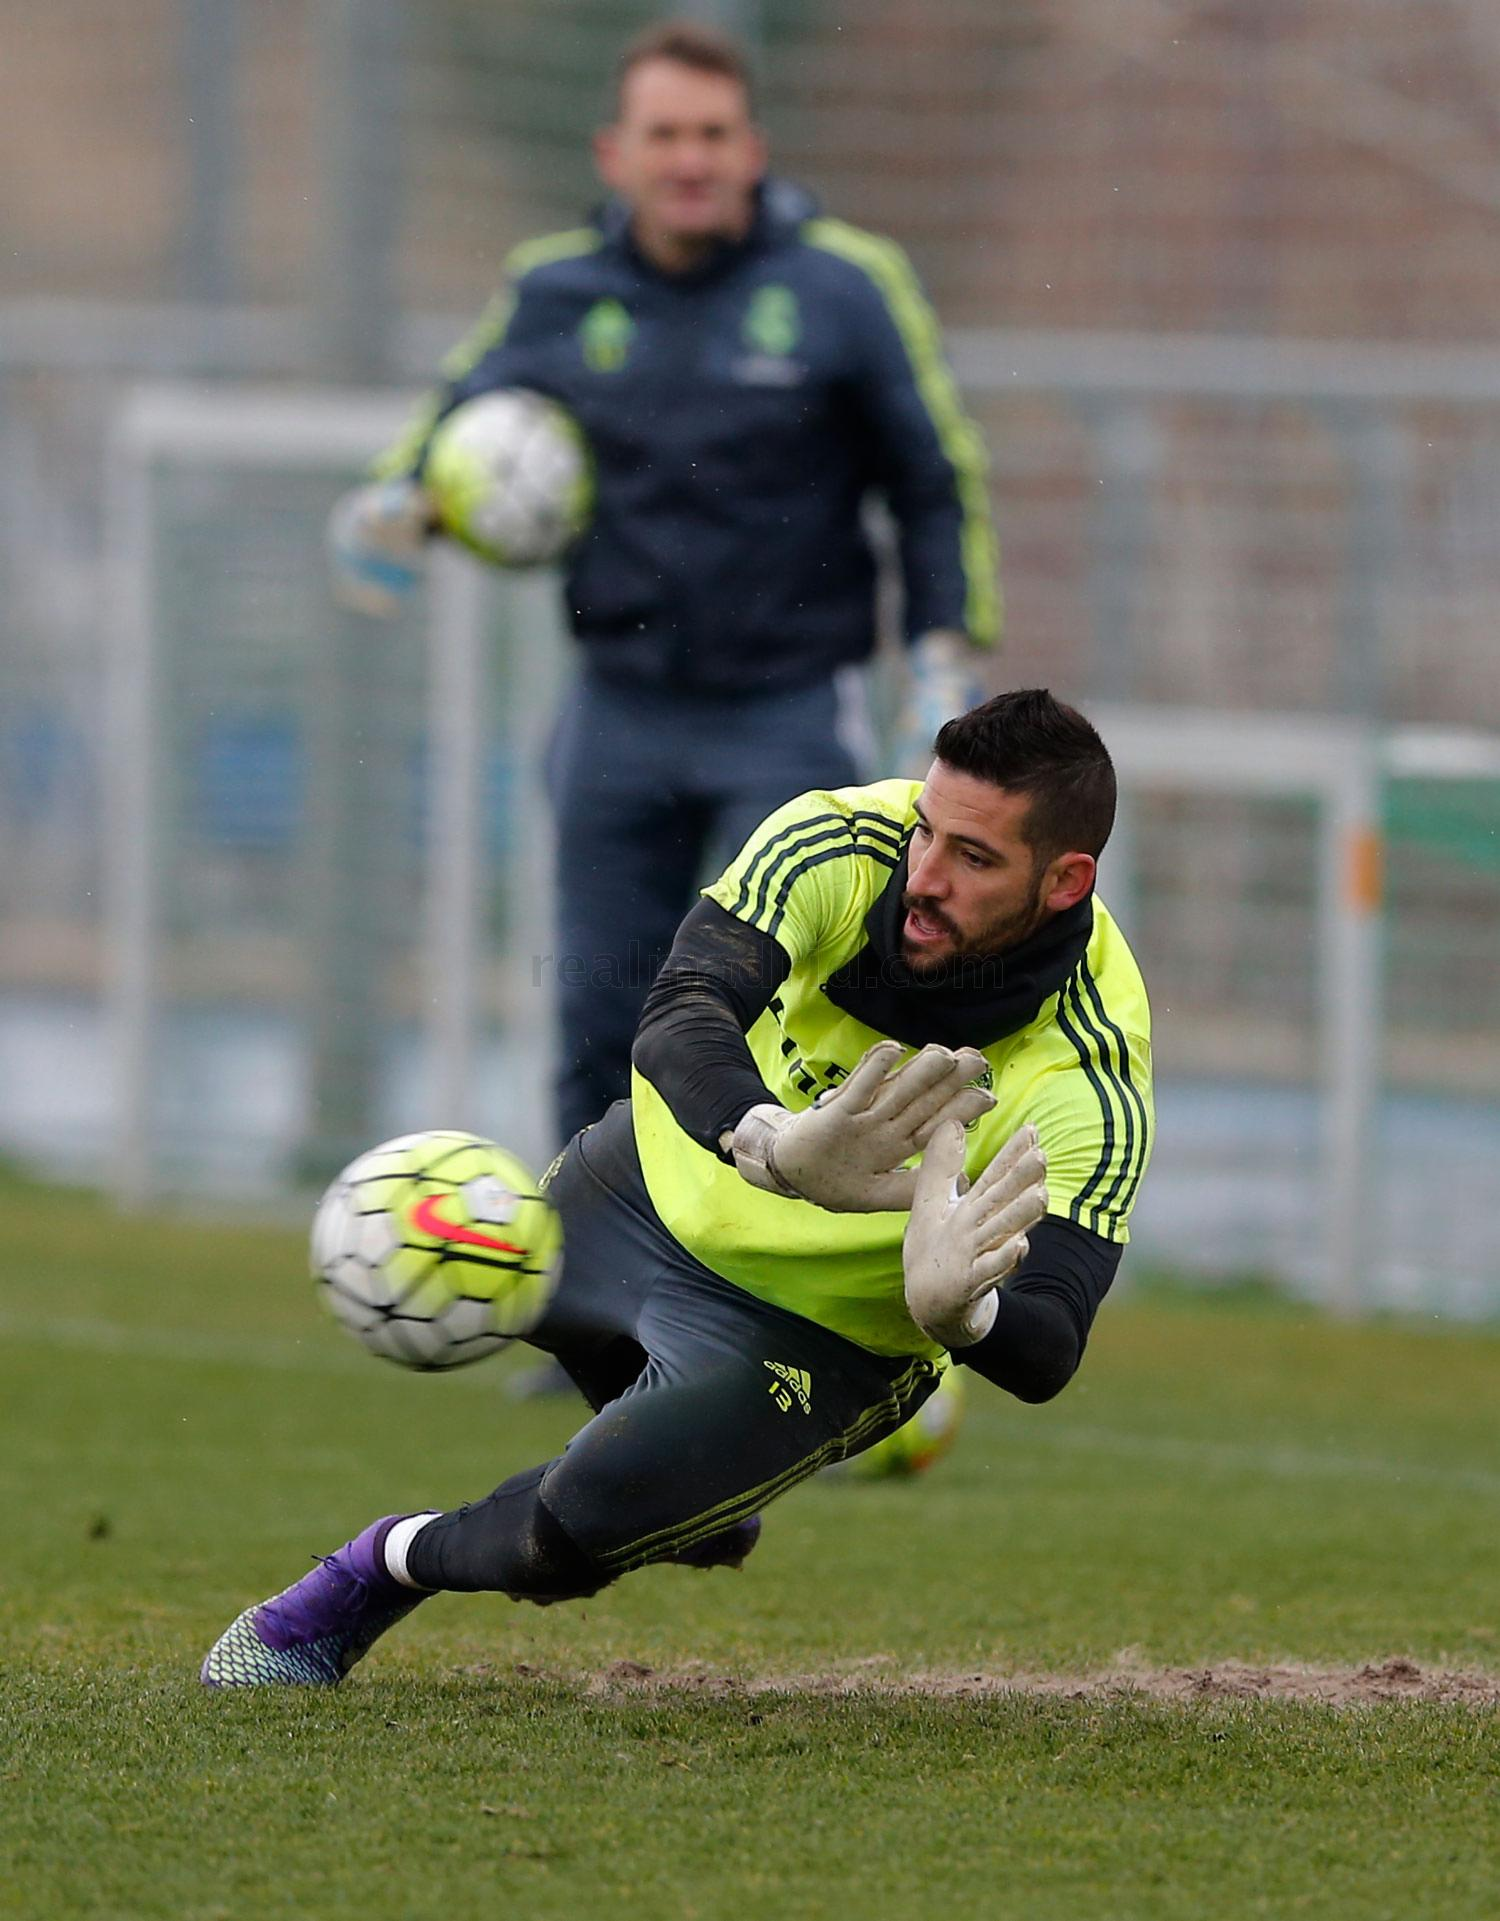 Real Madrid - Entrenamiento del Real Madrid - 26-02-2016